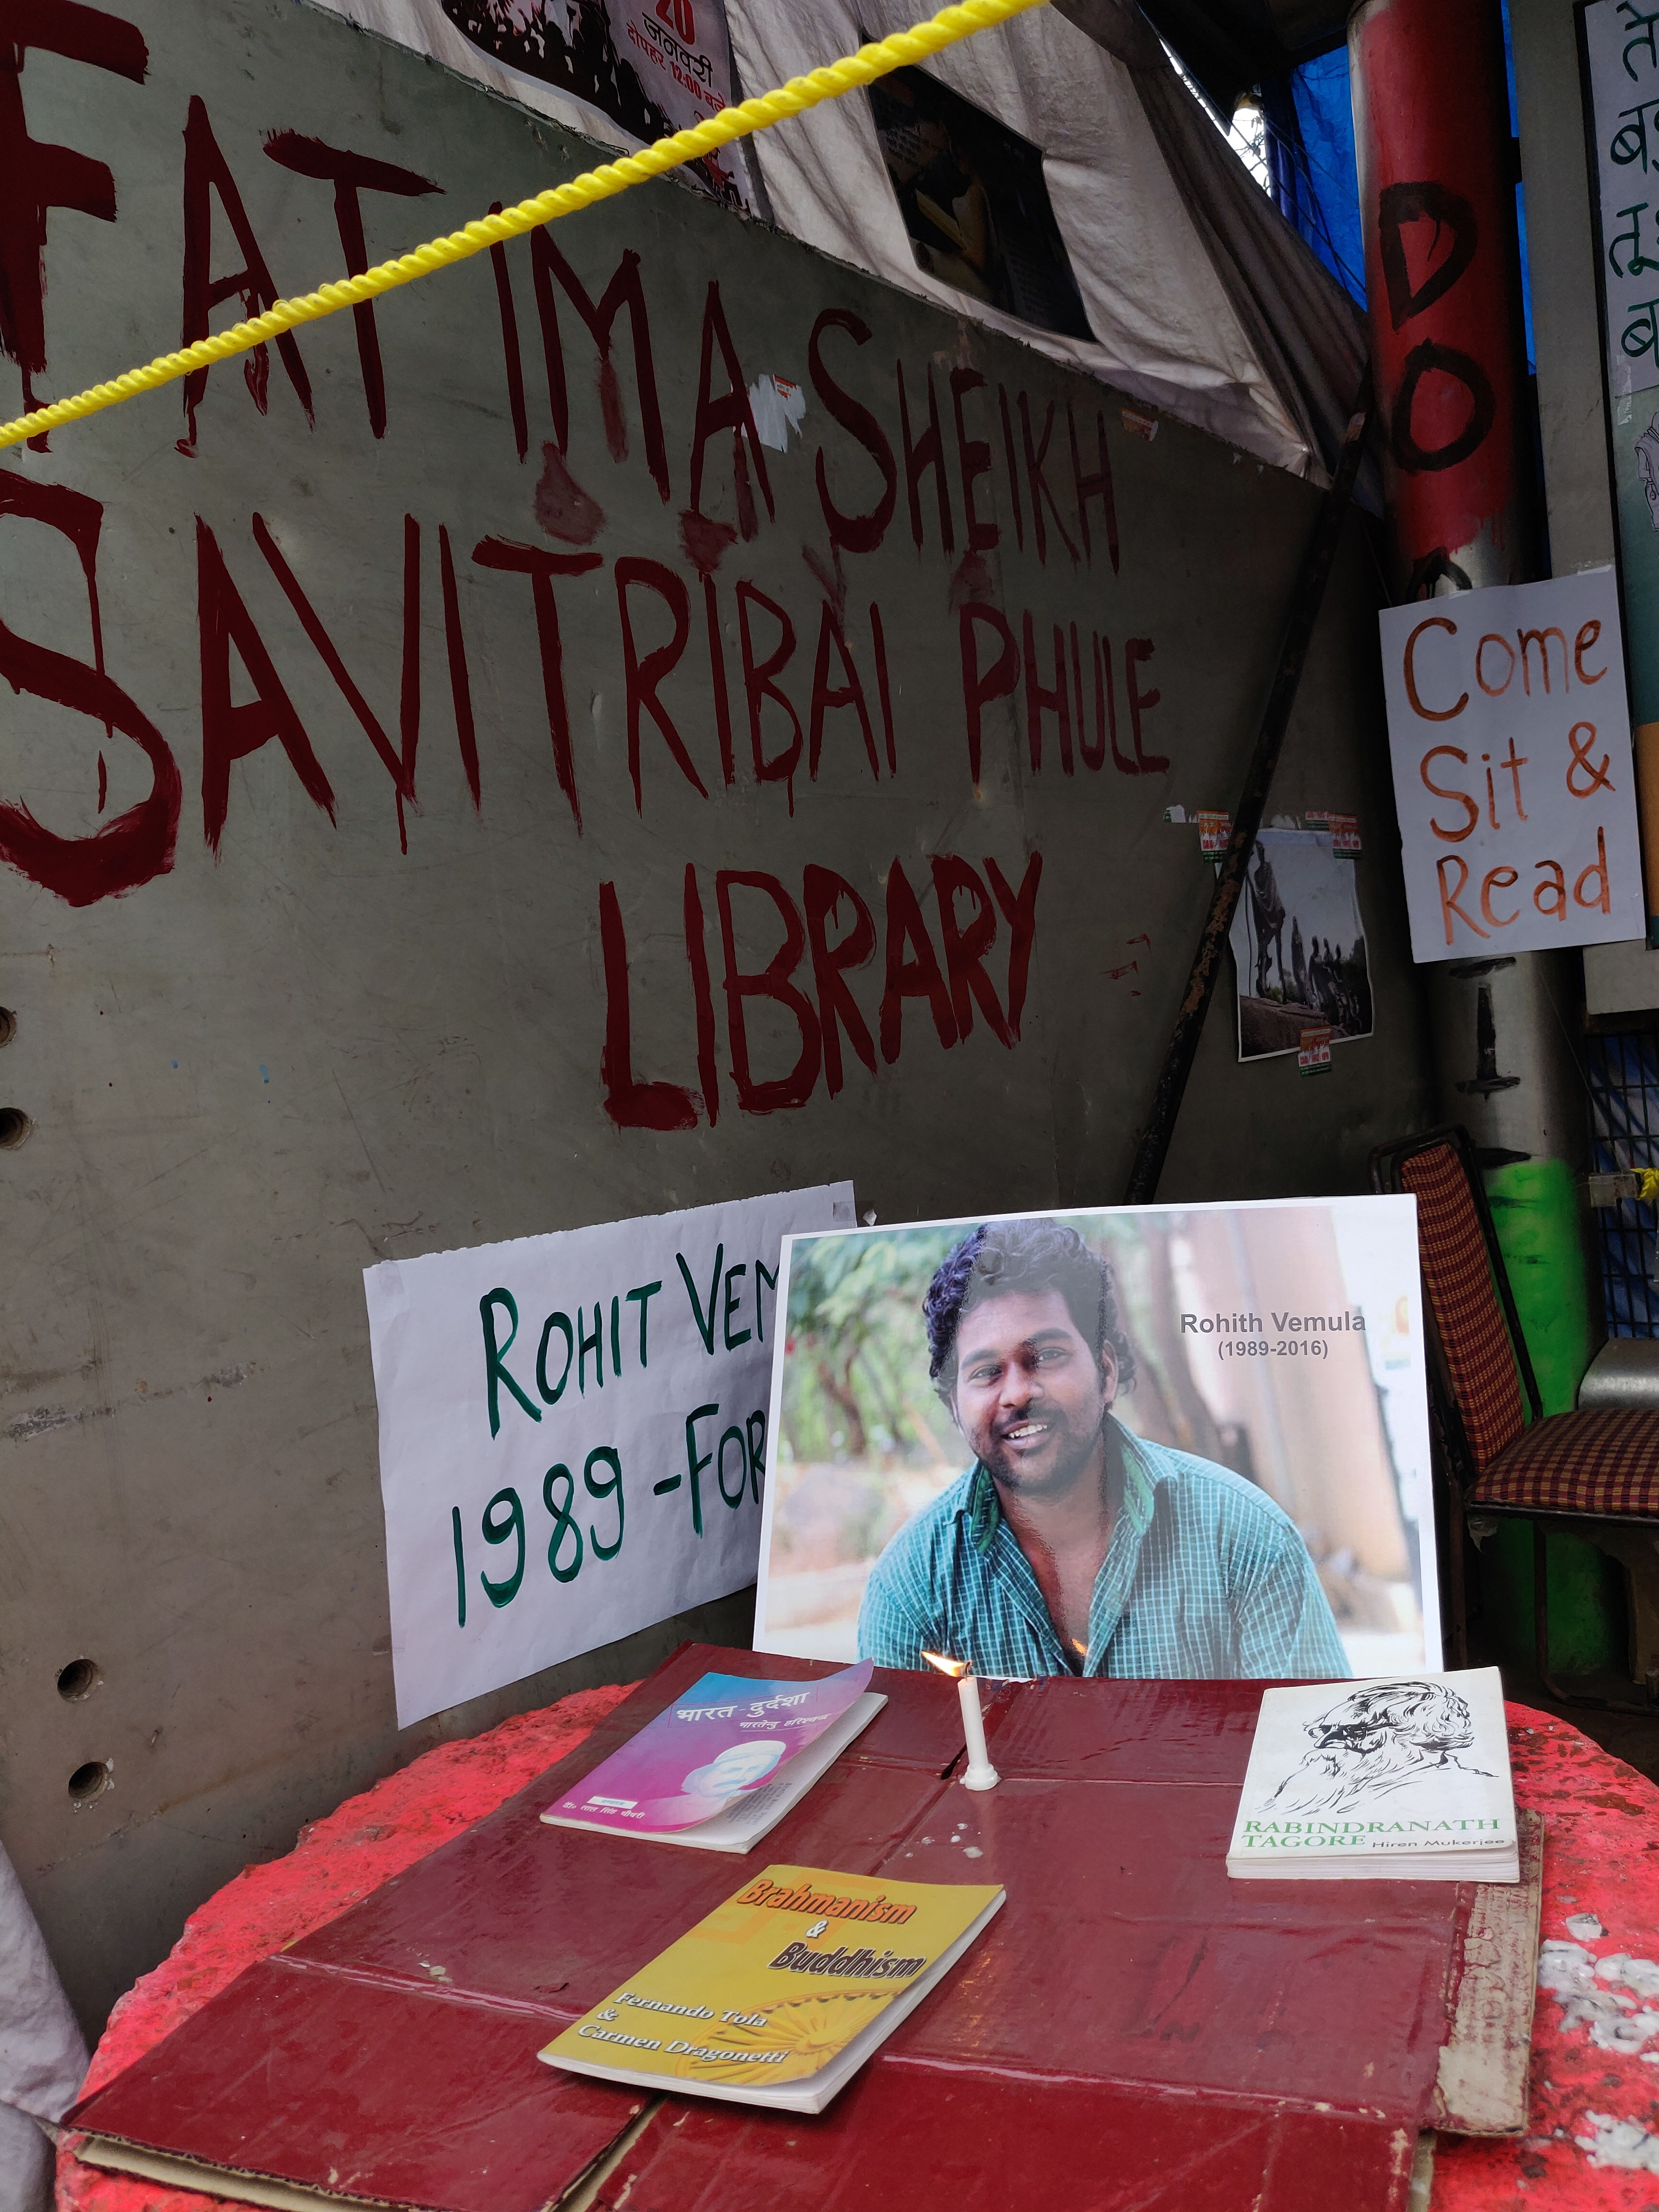 Rohith's portrait occupies one corner of the ragged library, a candle burns.